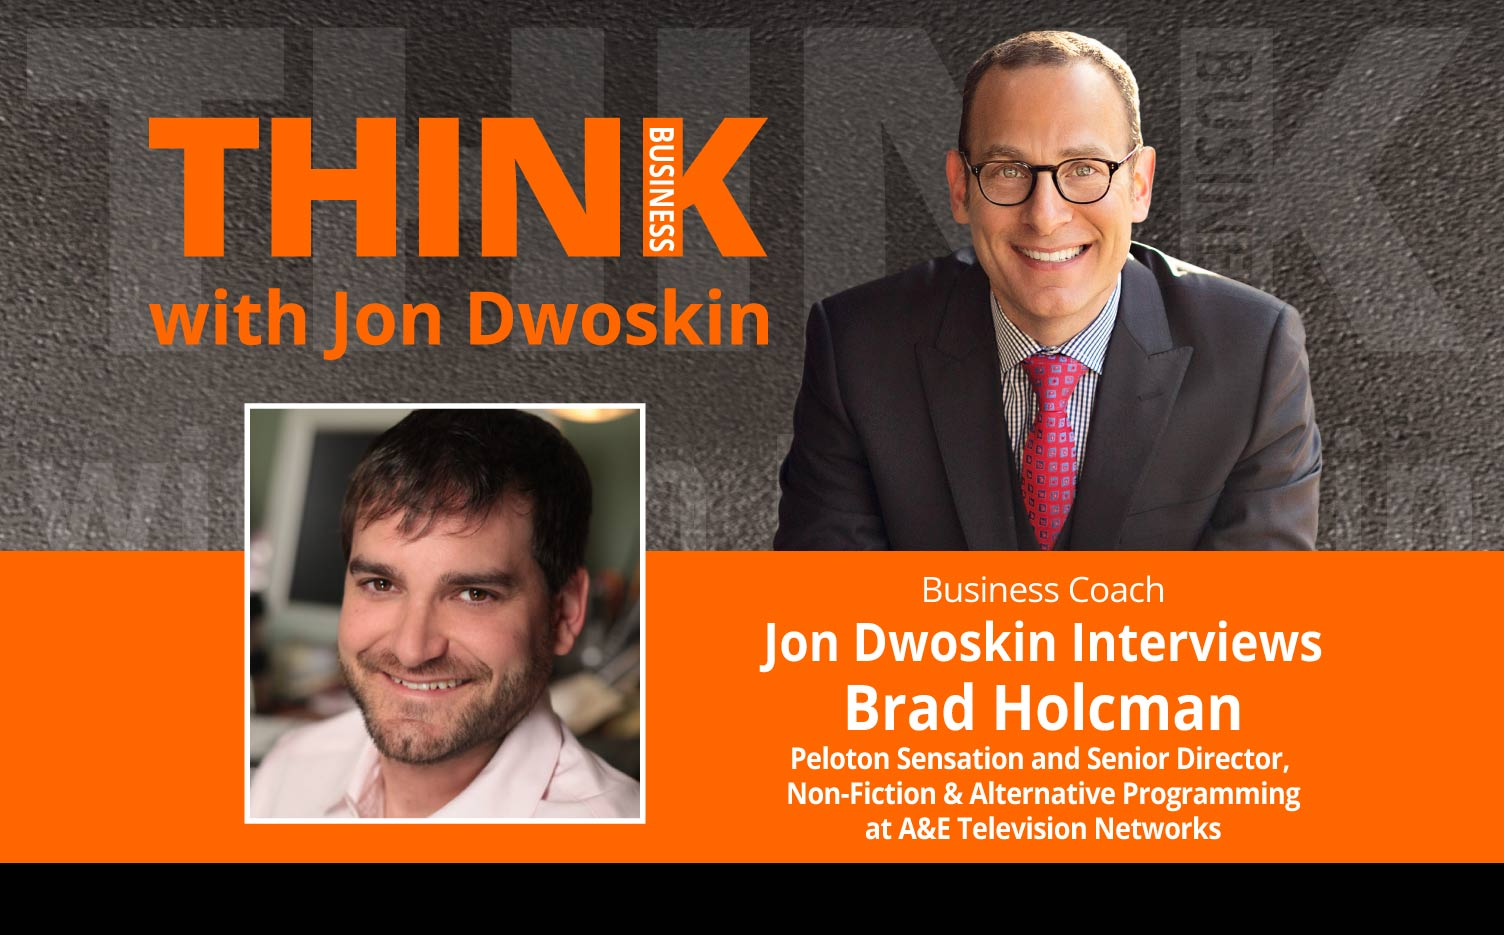 THINK Business Podcast: Jon Dwoskin Interviews Brad Holcman Peloton Sensation and Senior Director, Non-Fiction & Alternative Programming at A&E Television Networks